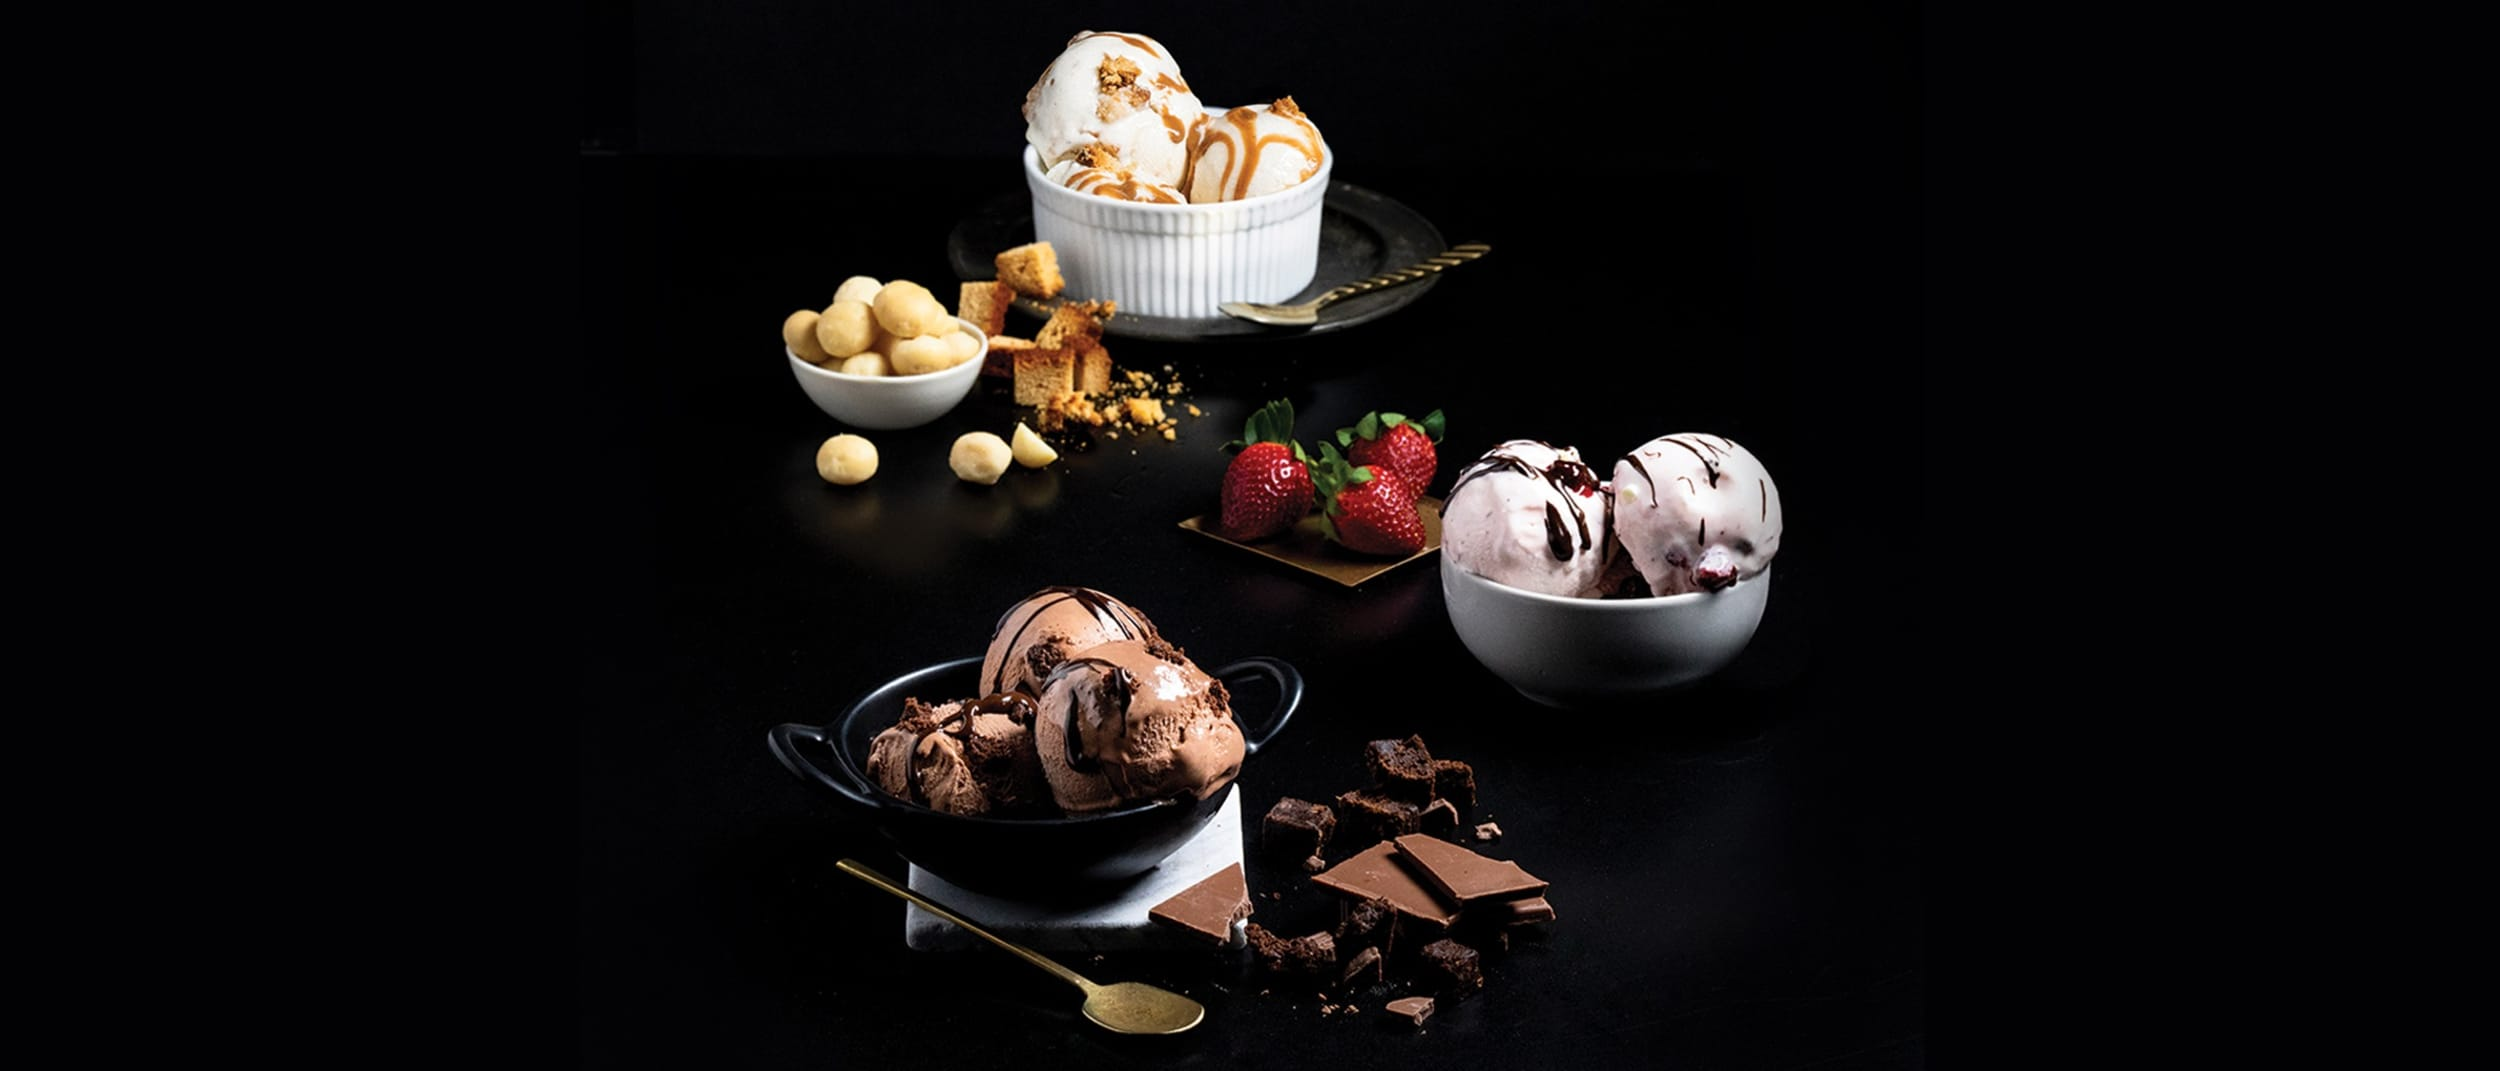 Gelatissimo: Deluxe range is here